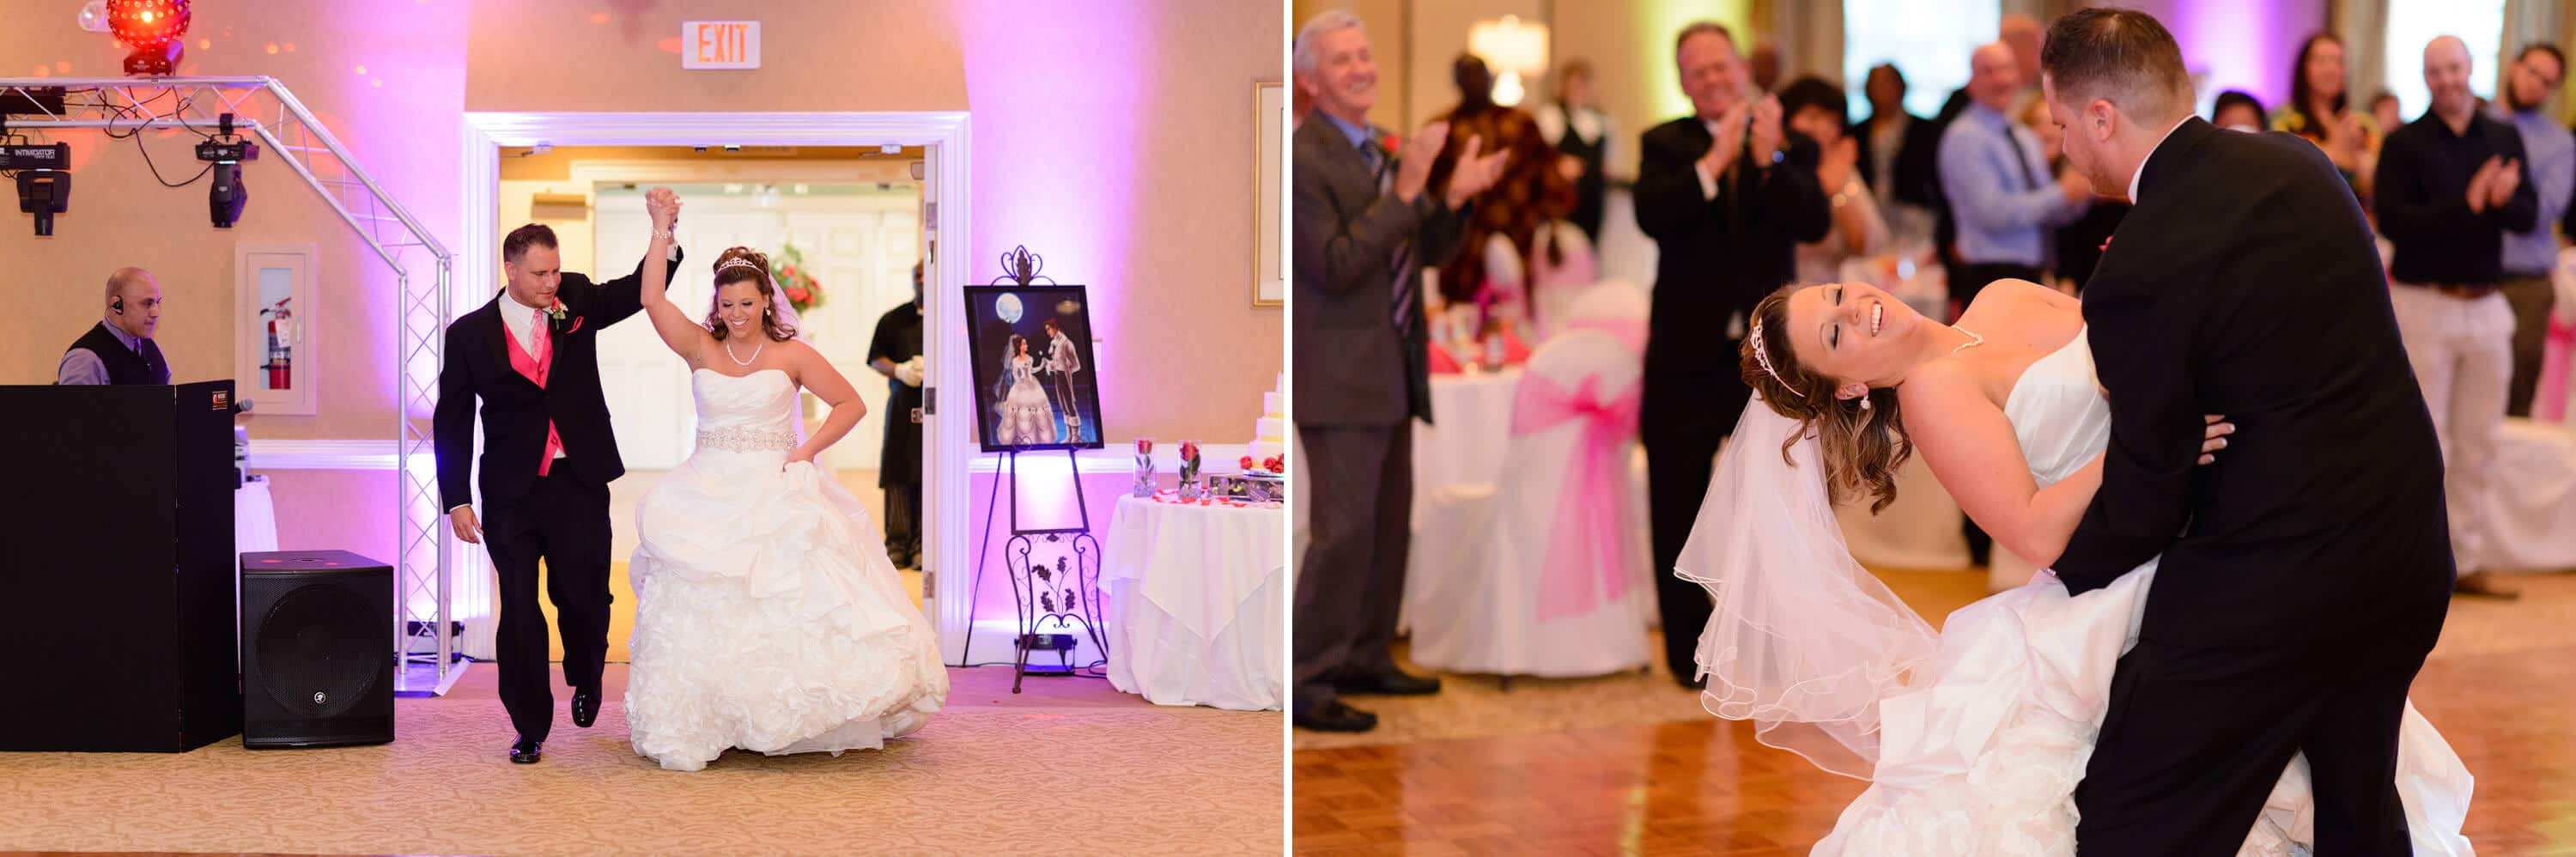 Pawleys Plantation Wedding With A Beauty And The Beast